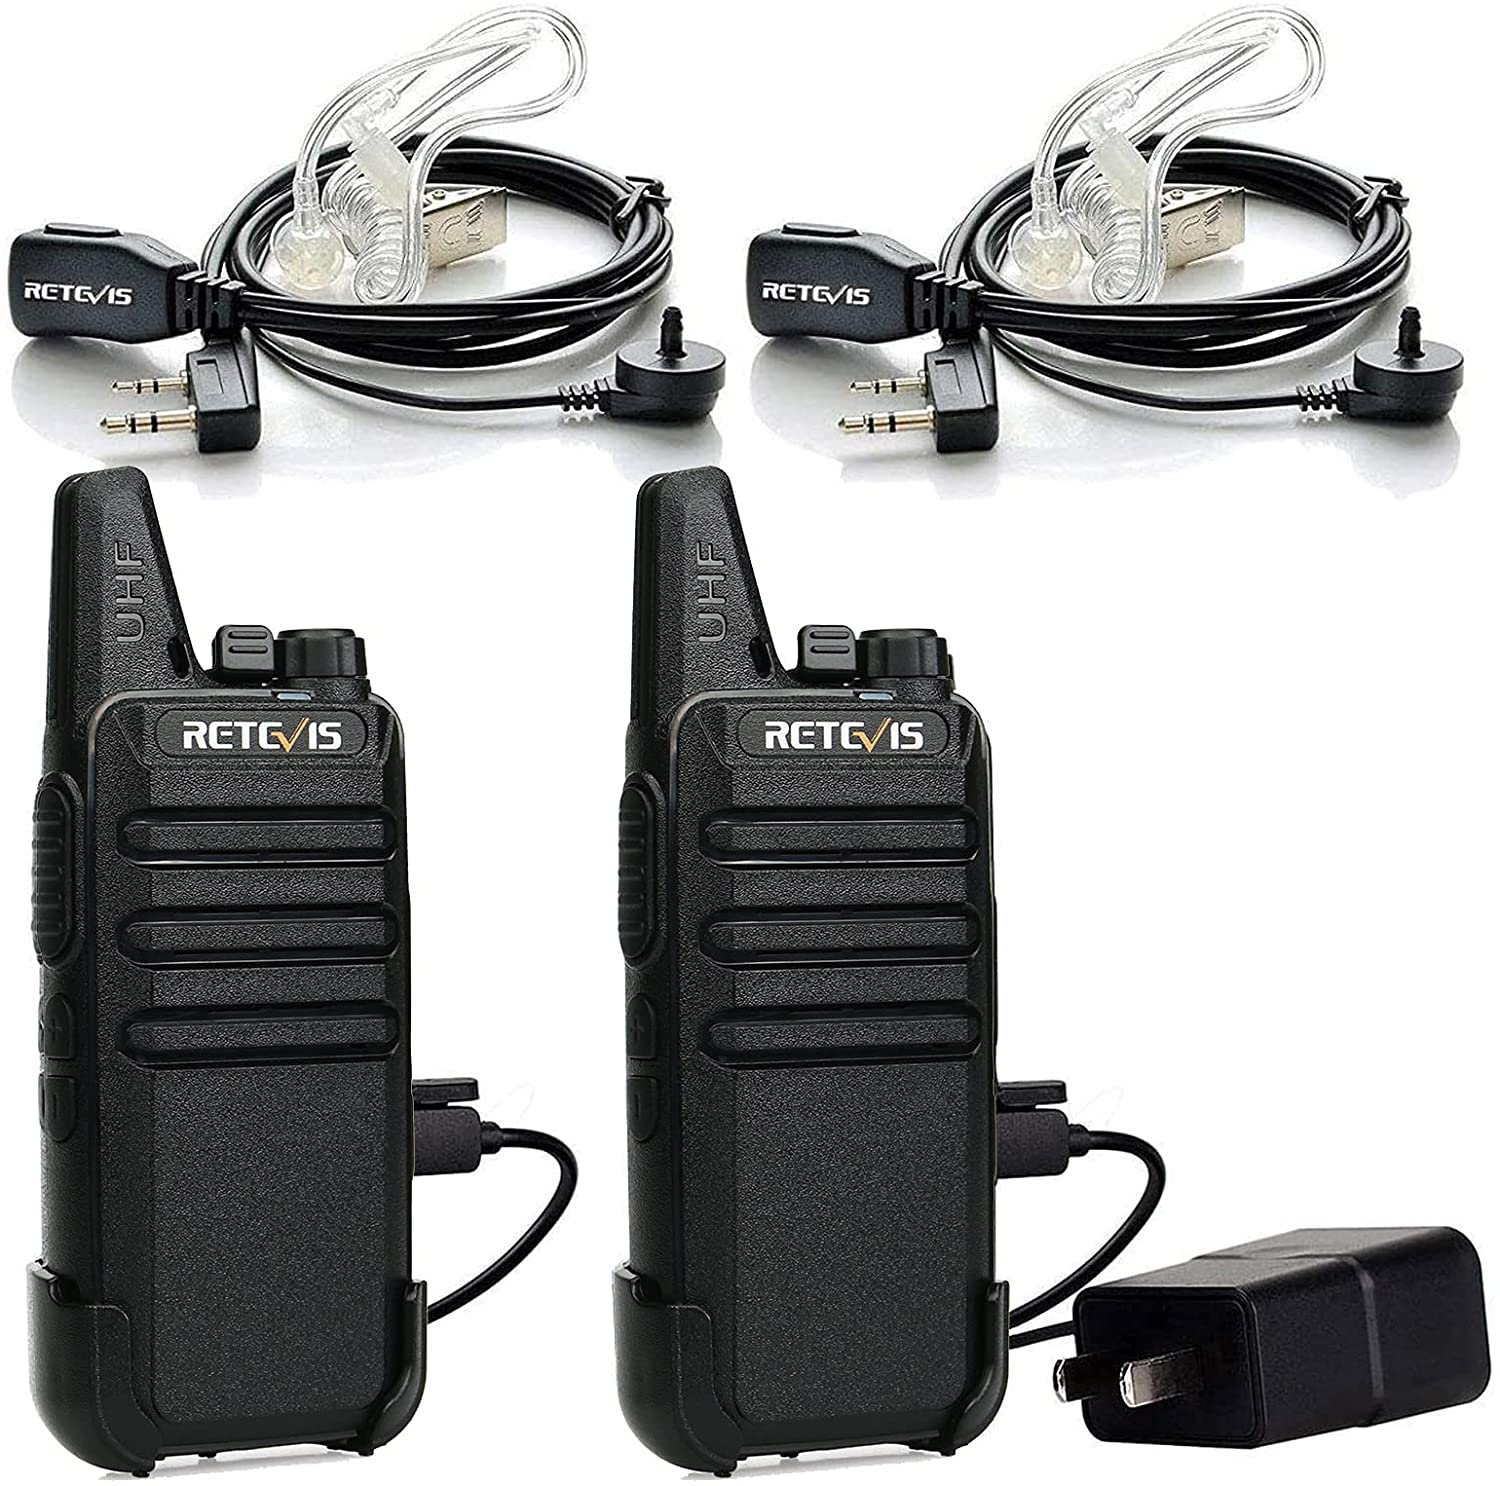 Retevis RT22 At the price of surprise Walkie Talkies Mini Rechargeable 2 Way VOX Sale Radio